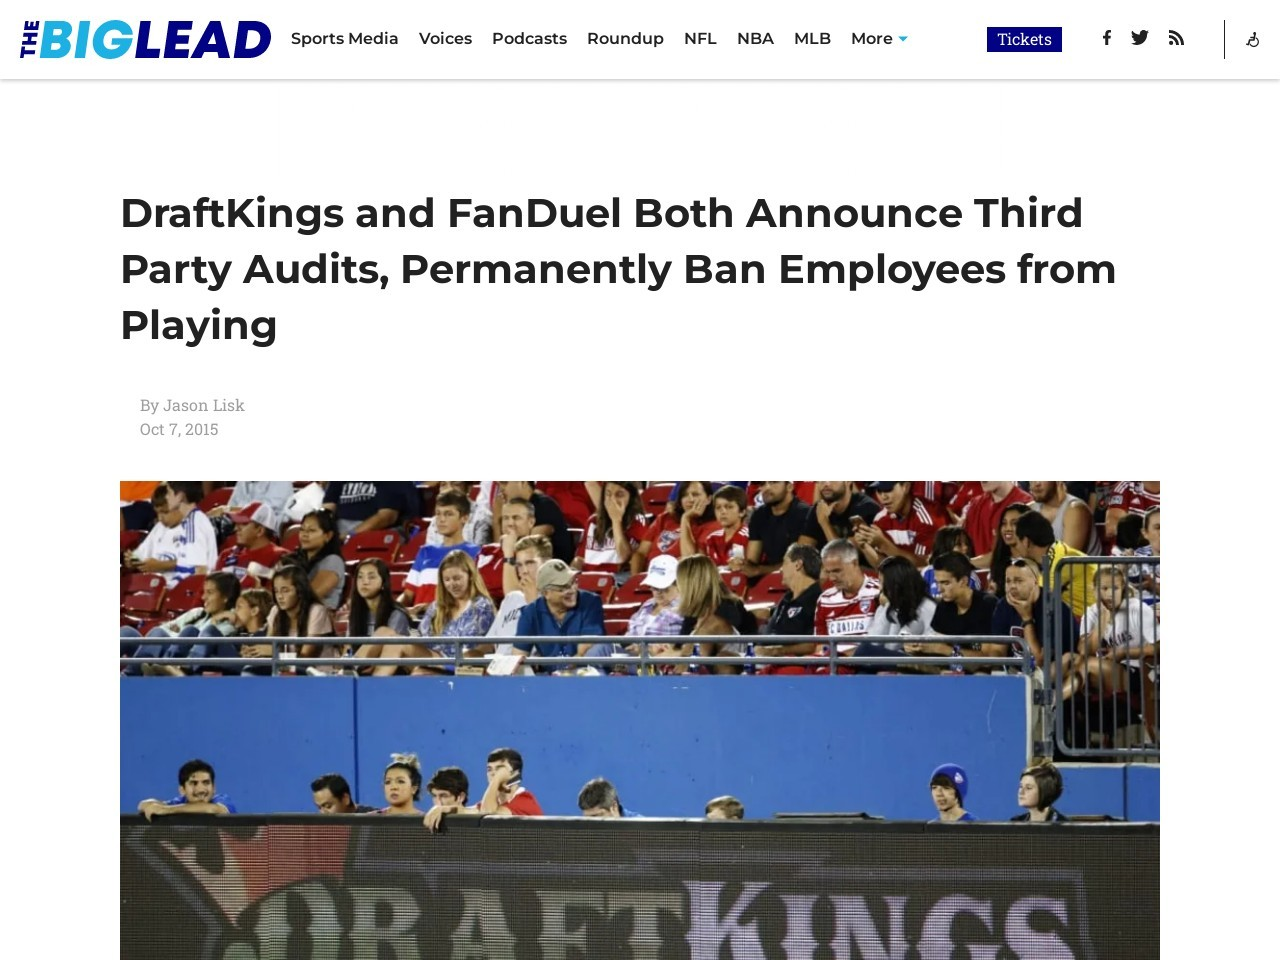 DraftKings and FanDuel Both Announce Third Party Audits